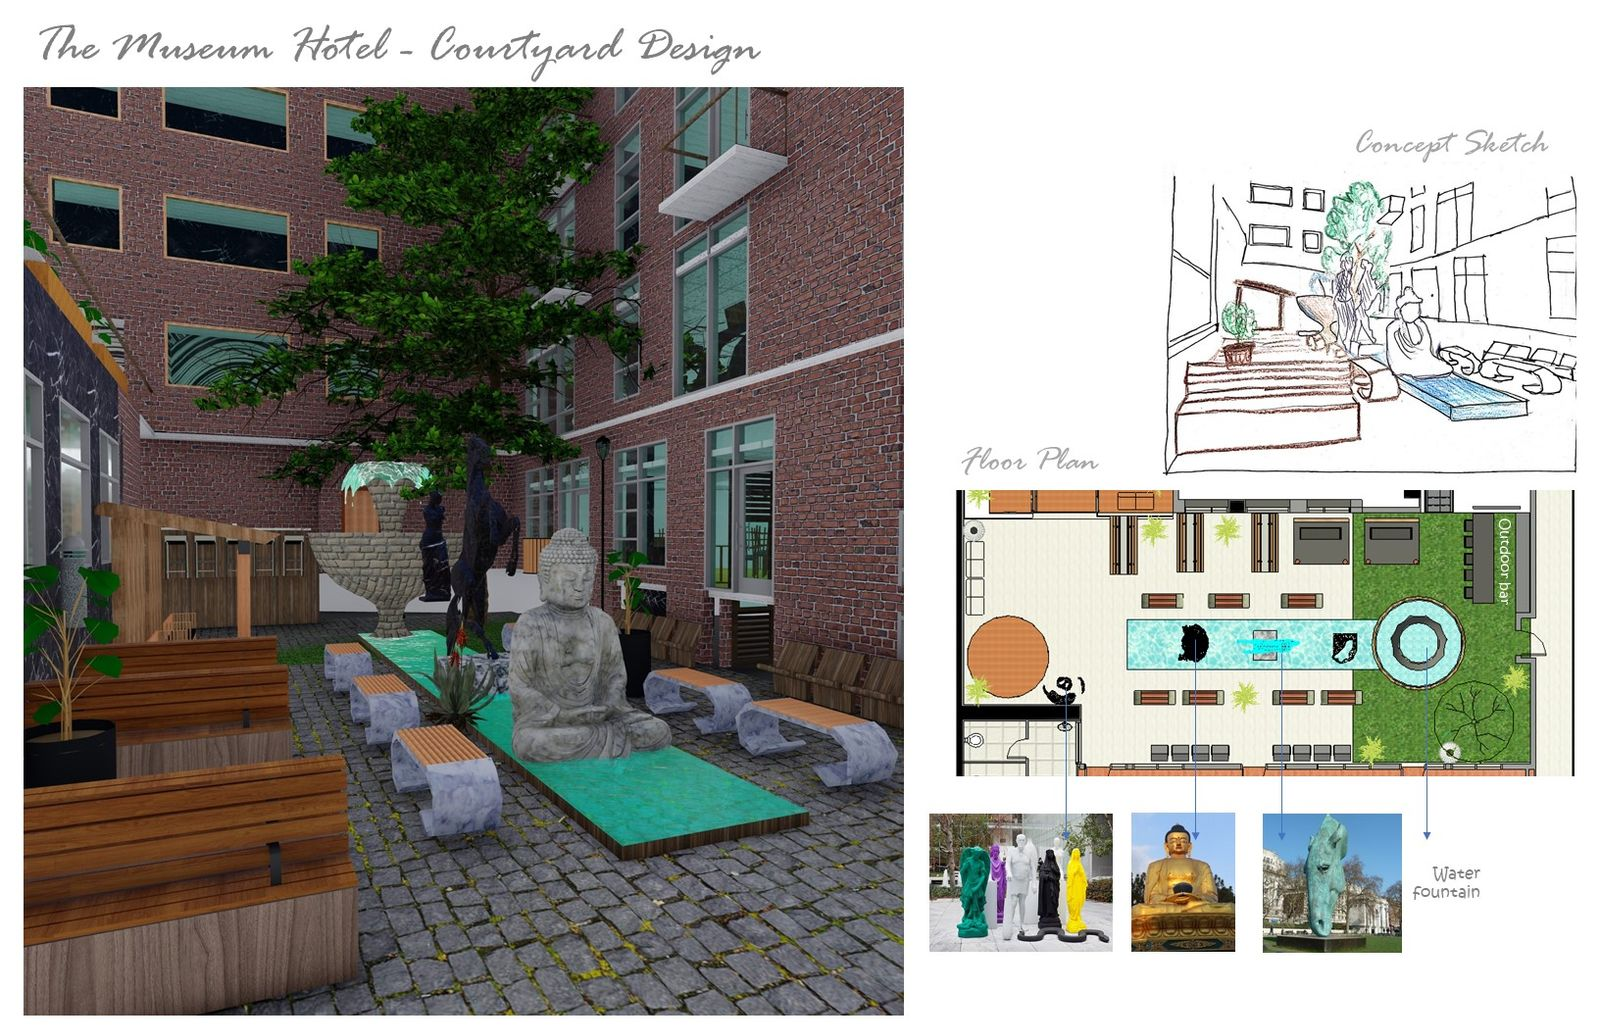 The Museum Hotel - Courtyard Design